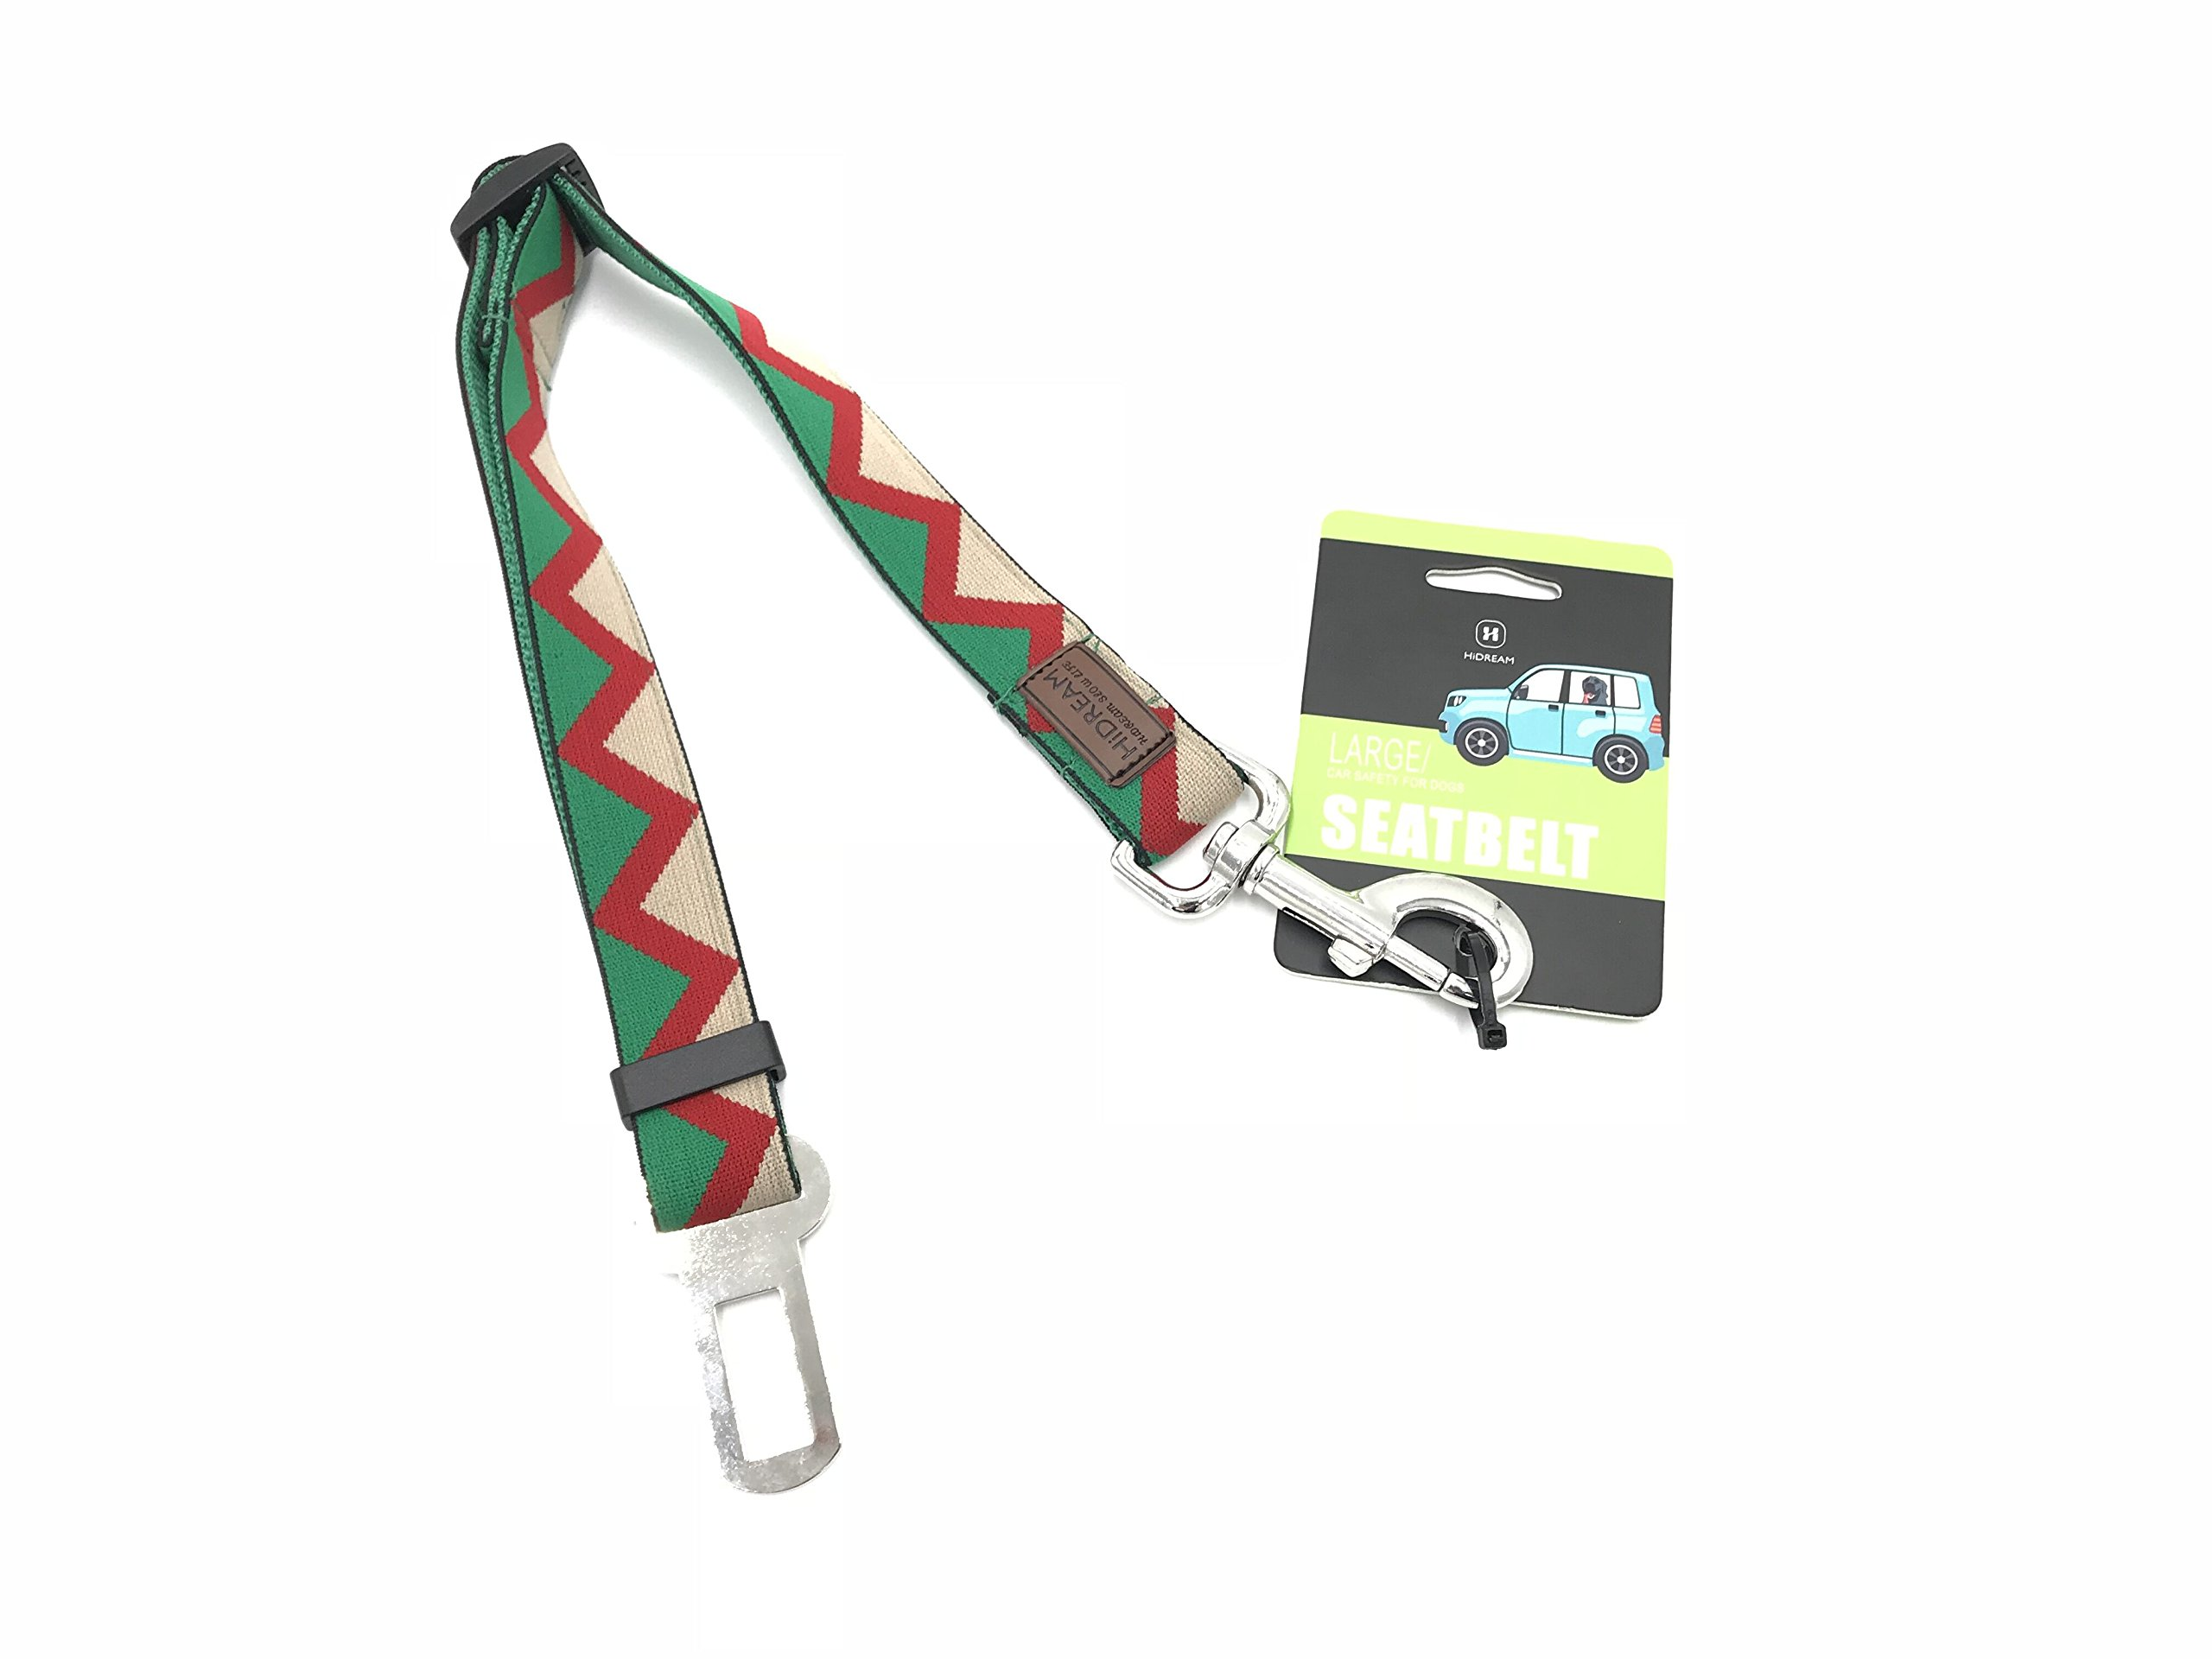 LLSW shop Pet Adjustable Safety Dog Seat Belt and Restraining Strap Car Seat Belt Safety Leads-Regular, Personalized Collars and Seatbelts for Dogs